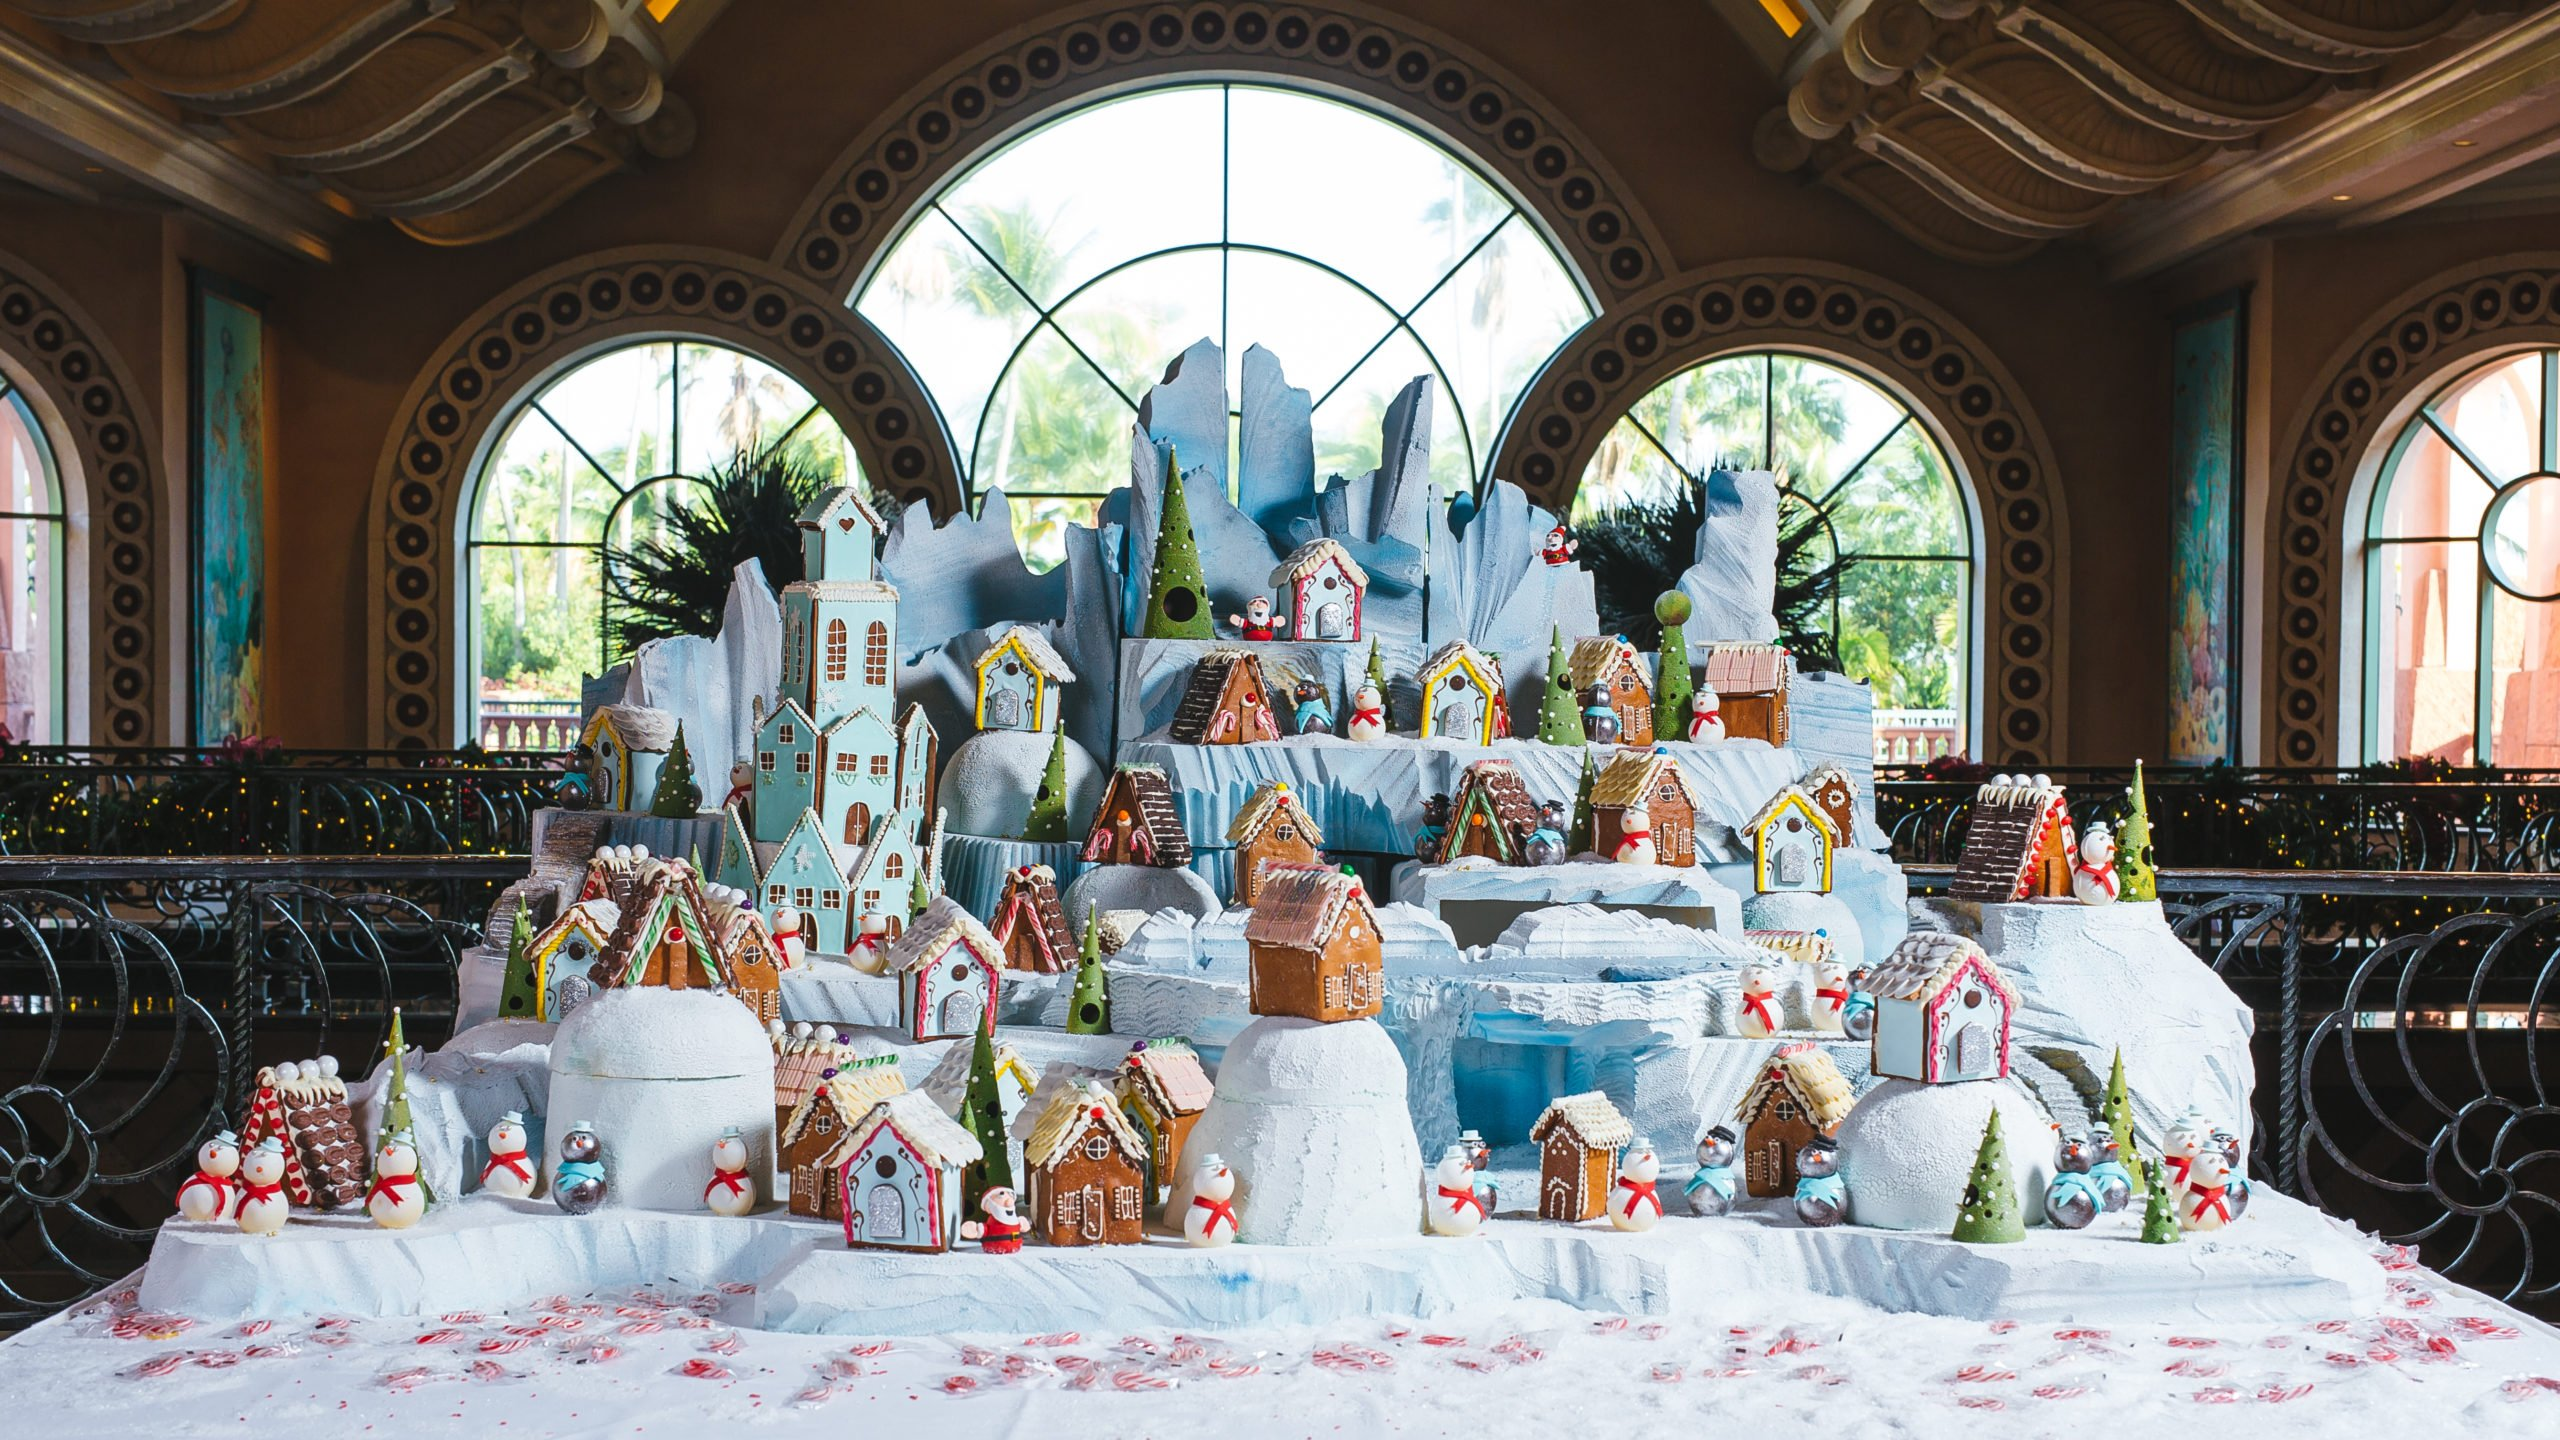 Atlantis' Gingerbread Village puts guests and visitors in the Christmas spirit